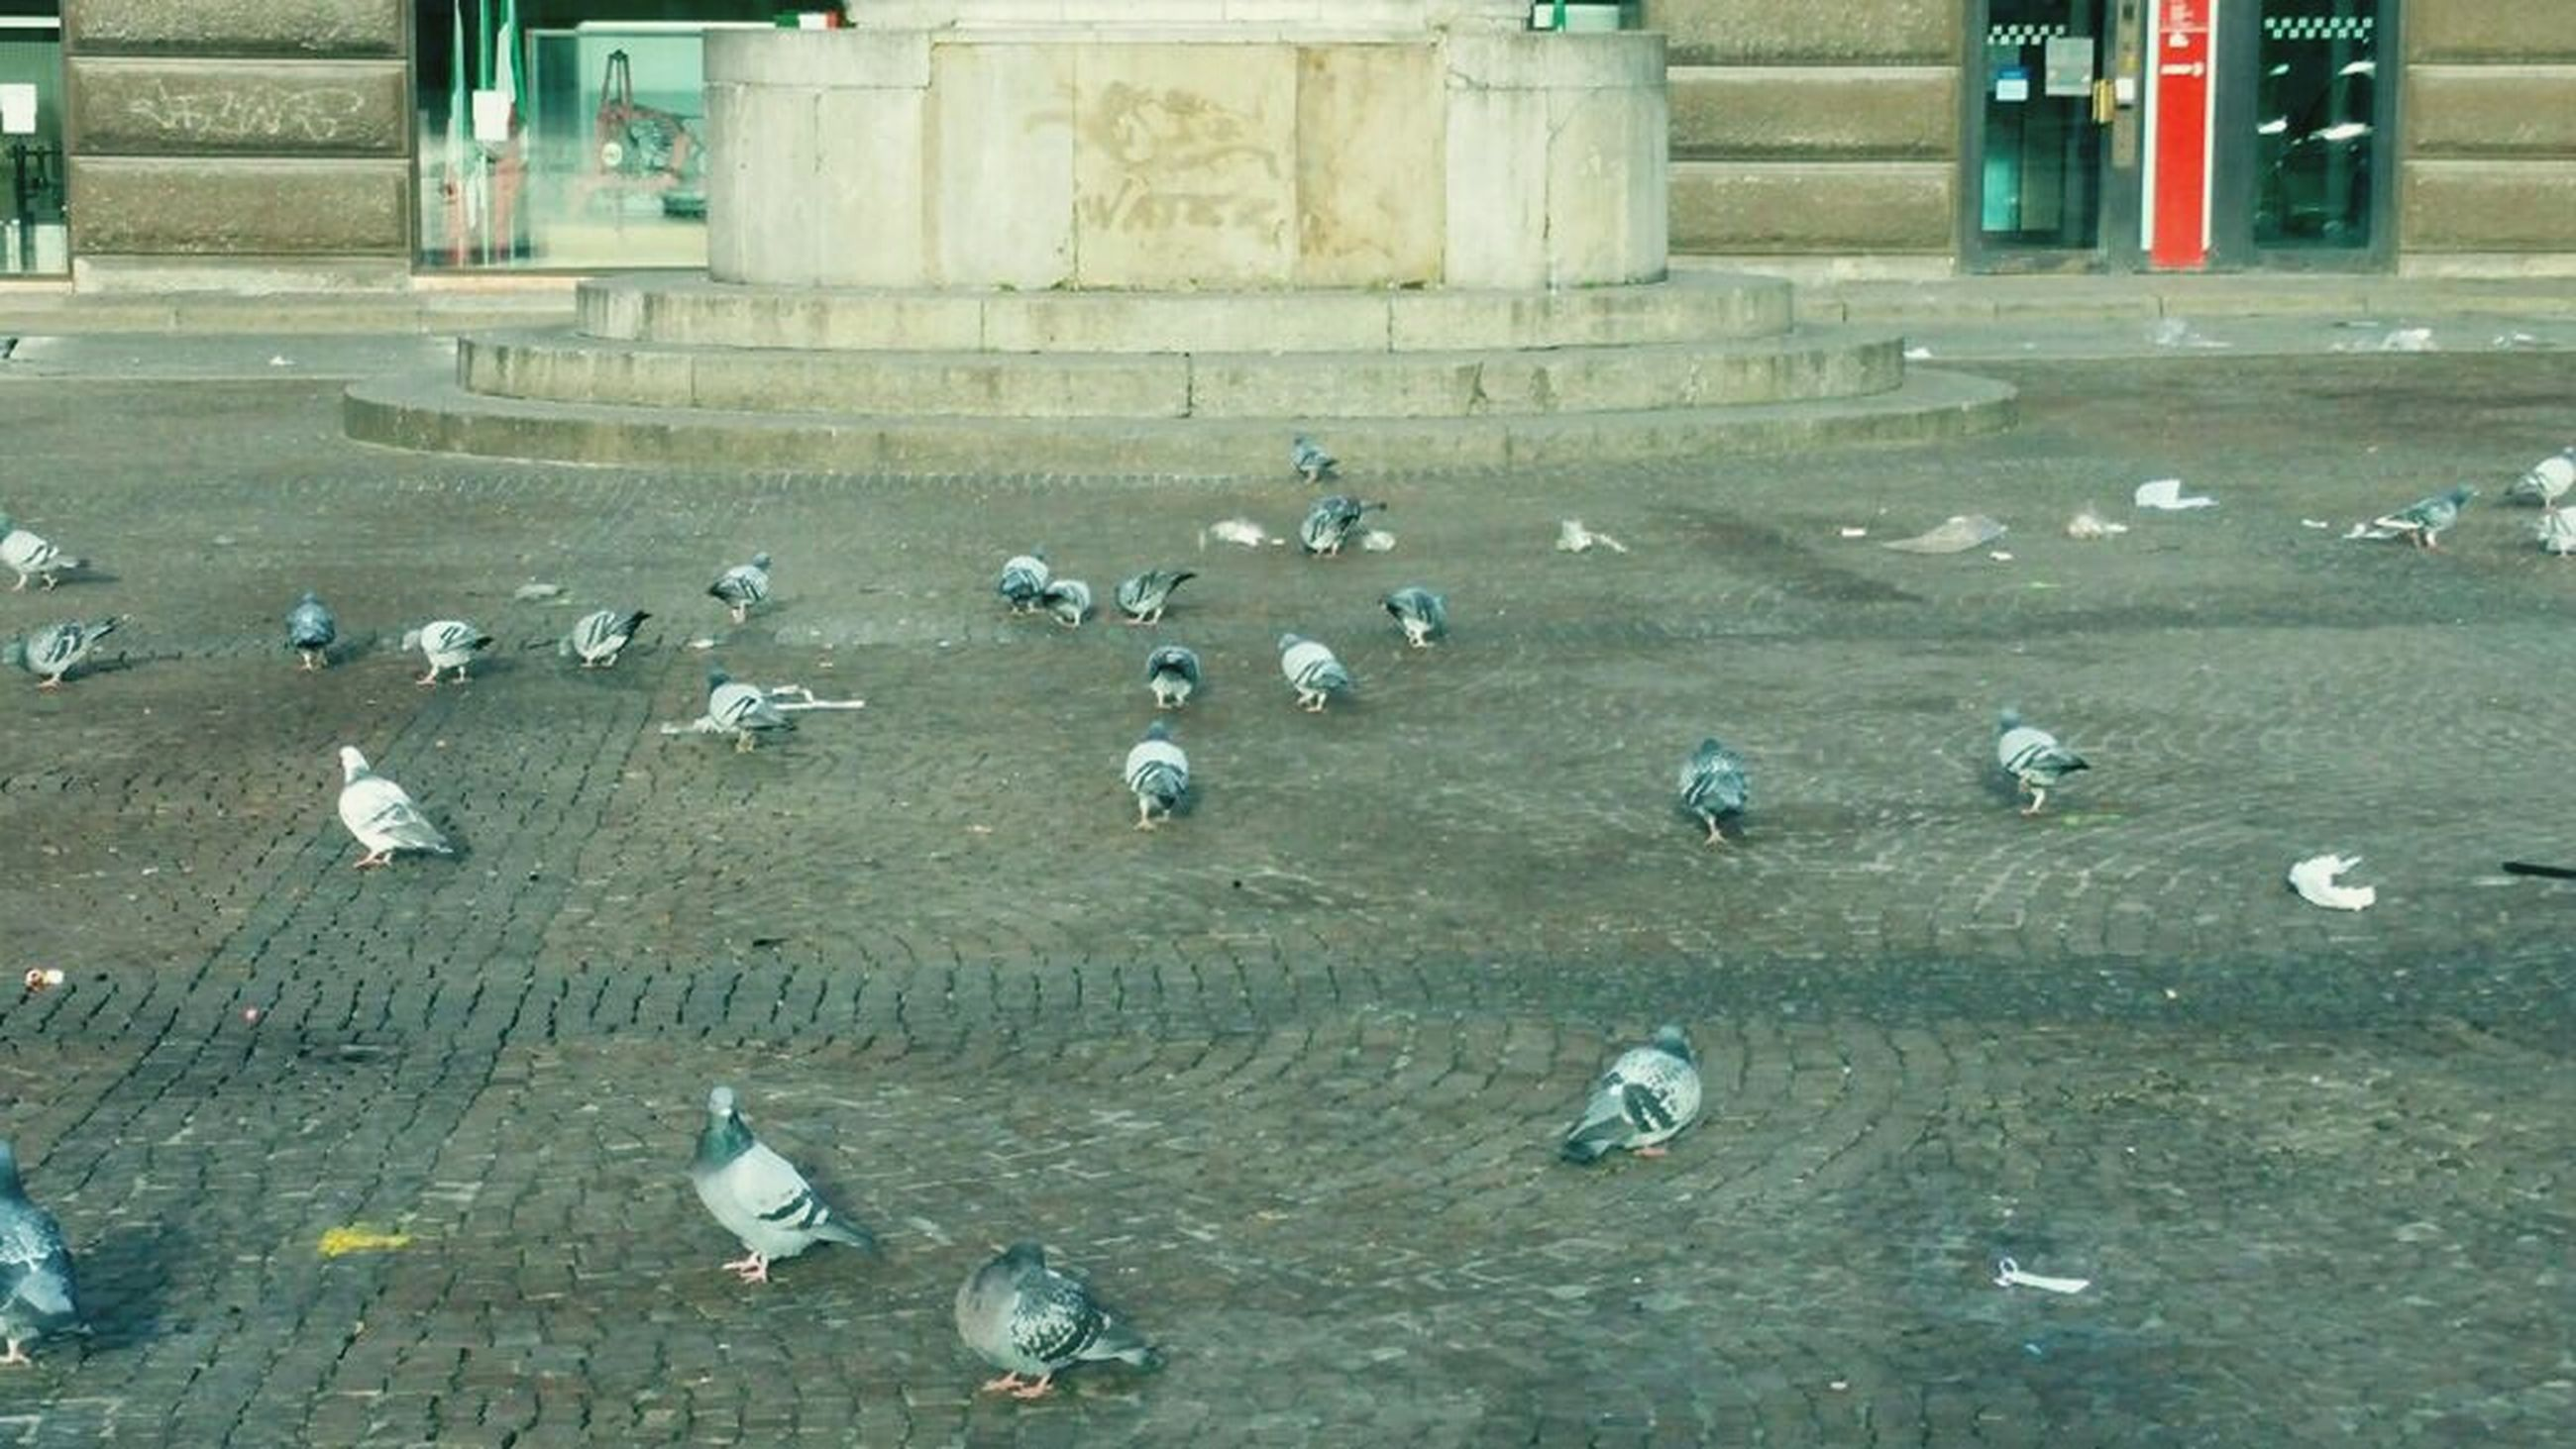 bird, animal themes, wildlife, animals in the wild, high angle view, day, outdoors, building exterior, built structure, no people, white color, street, nature, architecture, empty, pigeon, sunlight, absence, sand